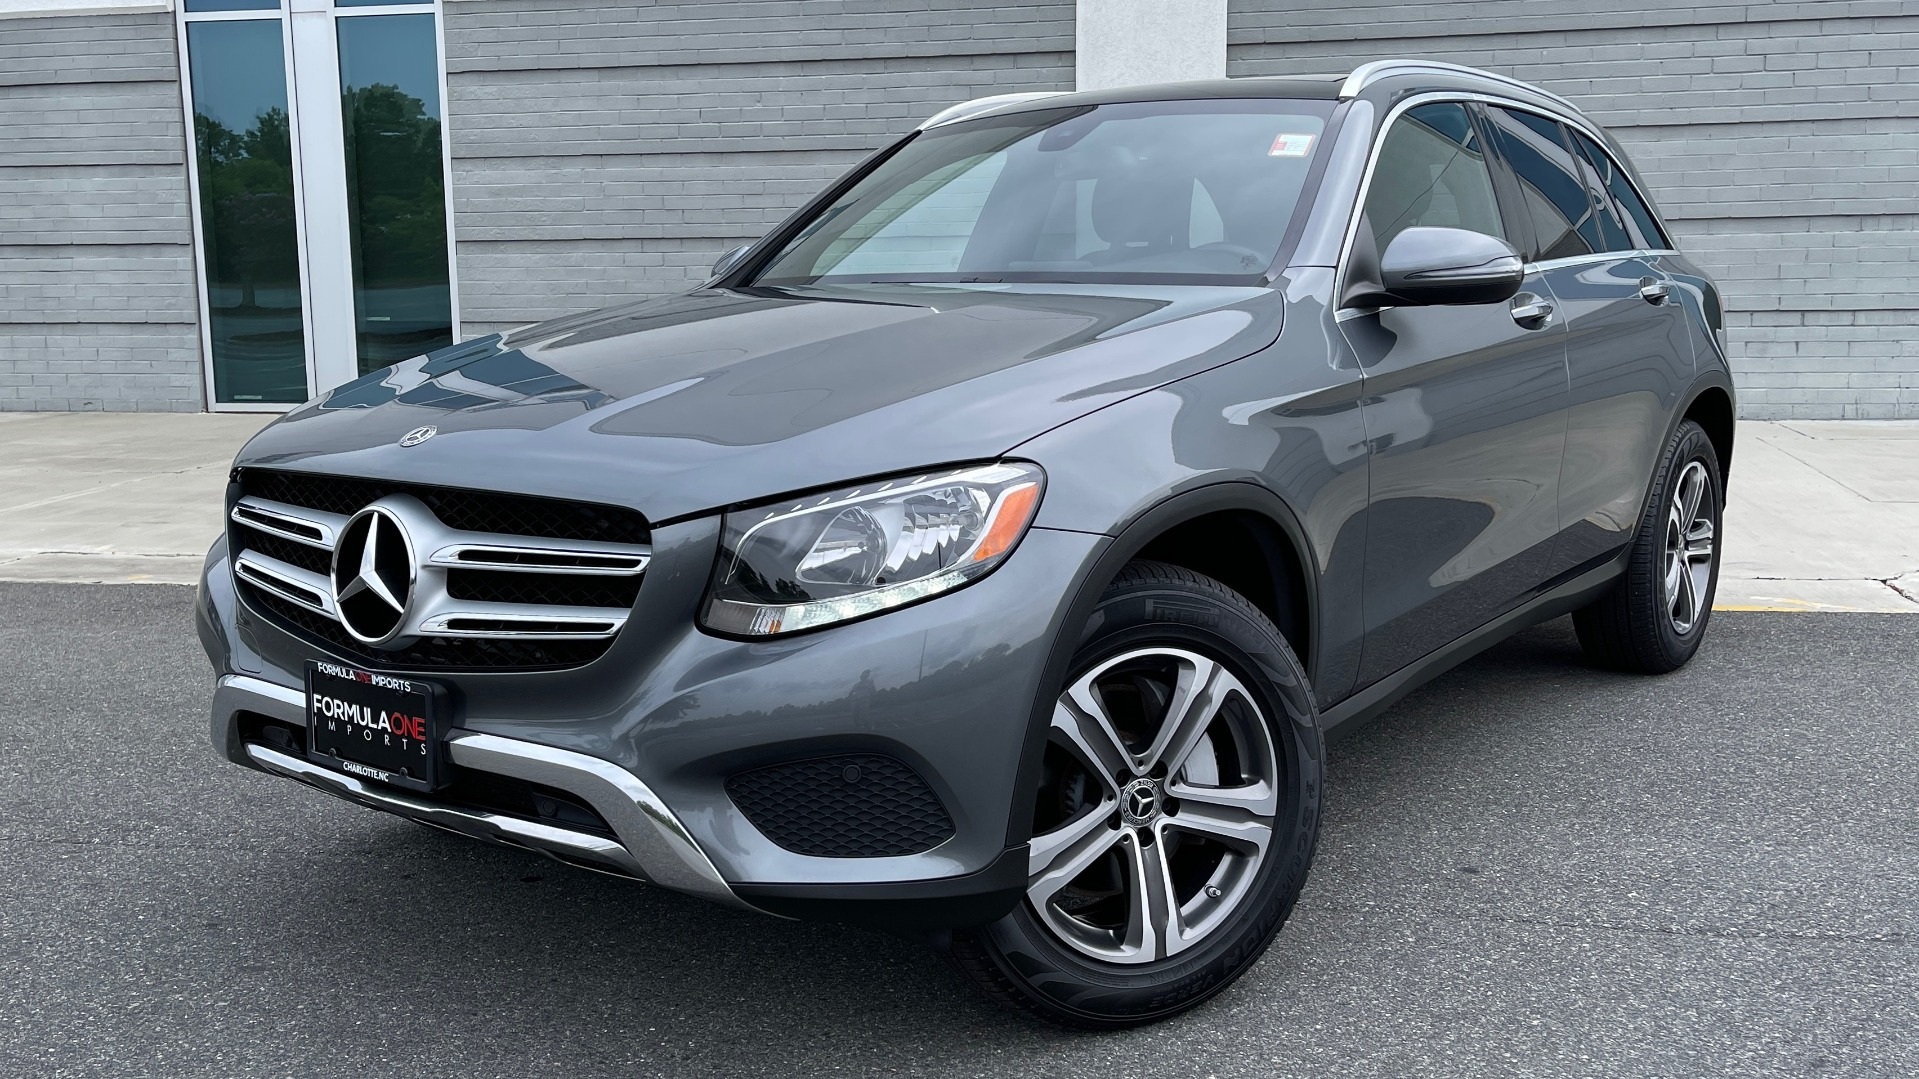 Used 2018 Mercedes-Benz GLC 300 4MATIC PREMIUM / PANO-ROOF / HTD STS / APPLE / REARVIEW for sale $34,295 at Formula Imports in Charlotte NC 28227 1